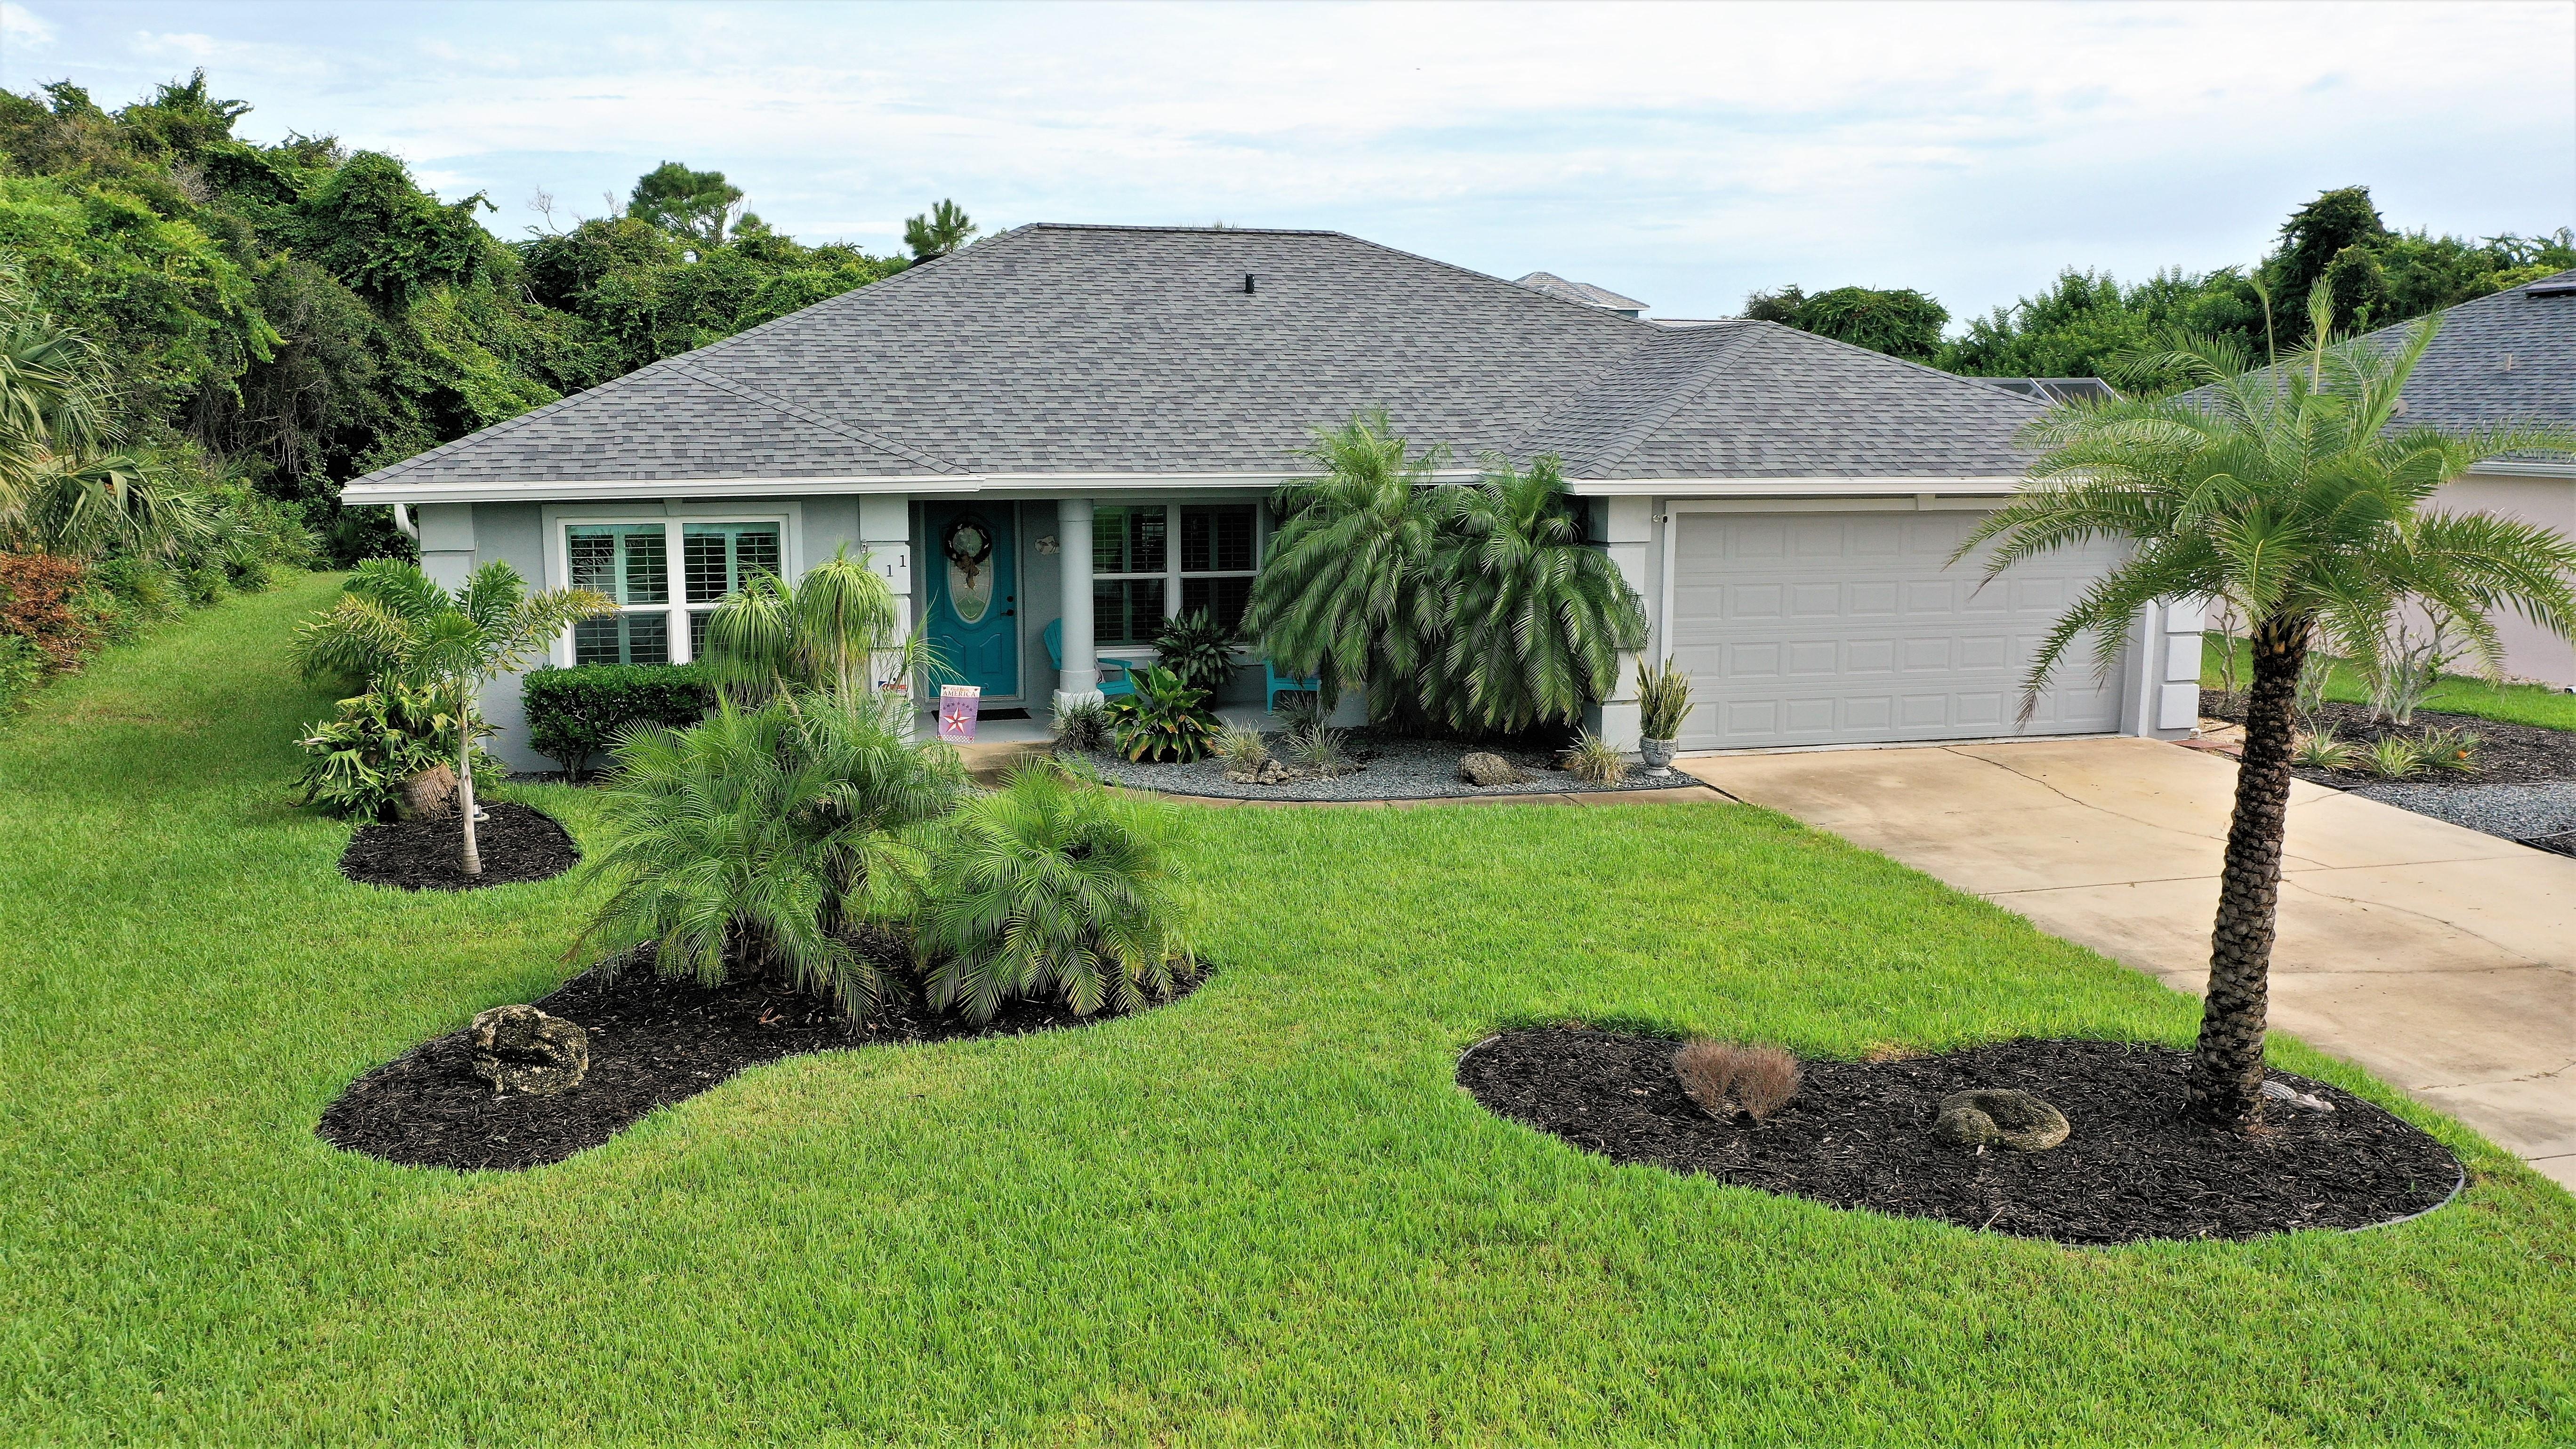 Property Image for 111 Heron Dunes Drive